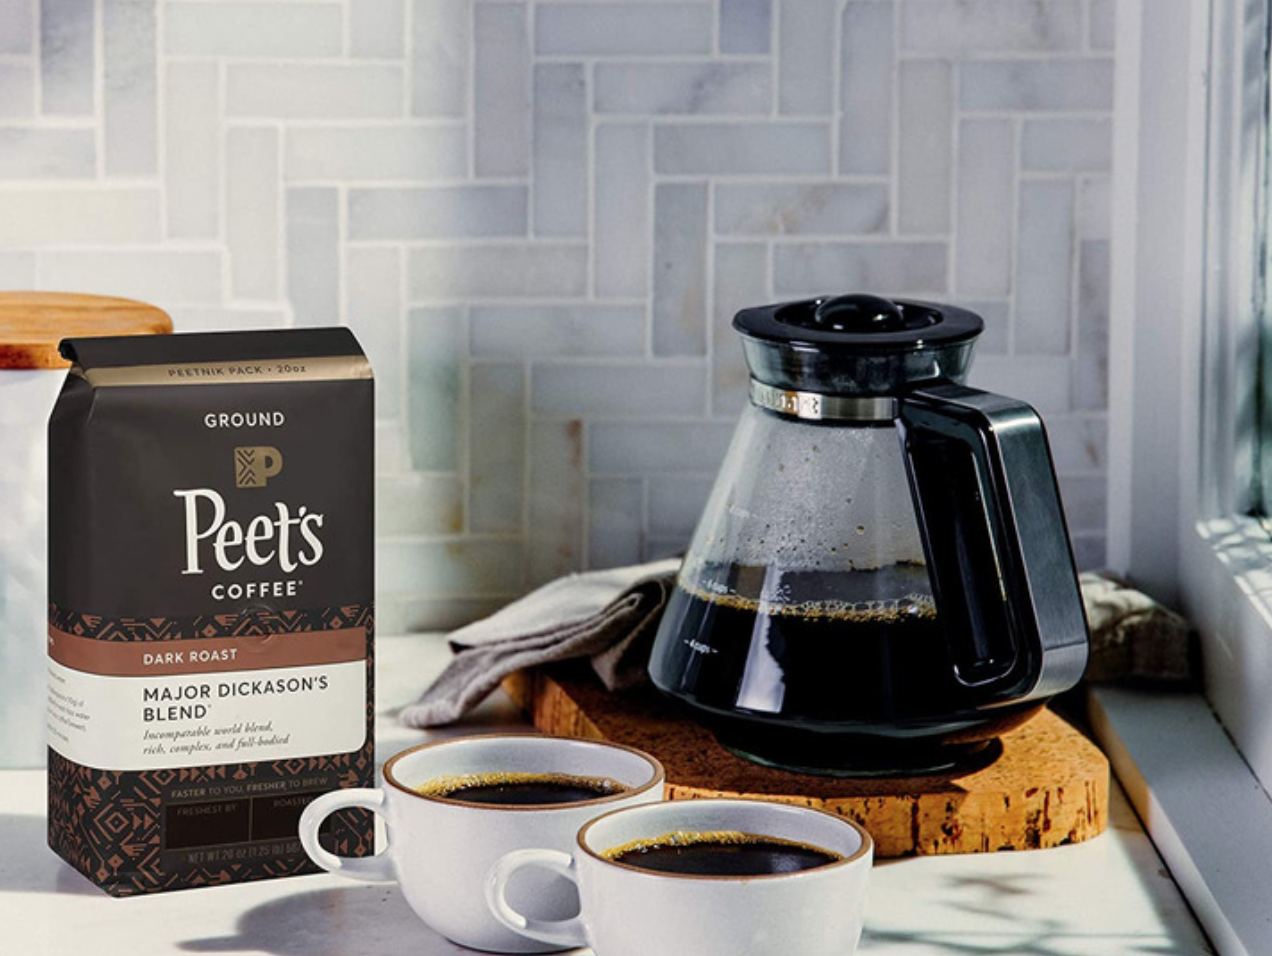 The Best Coffee You Can Buy On Amazon, According to Reviews